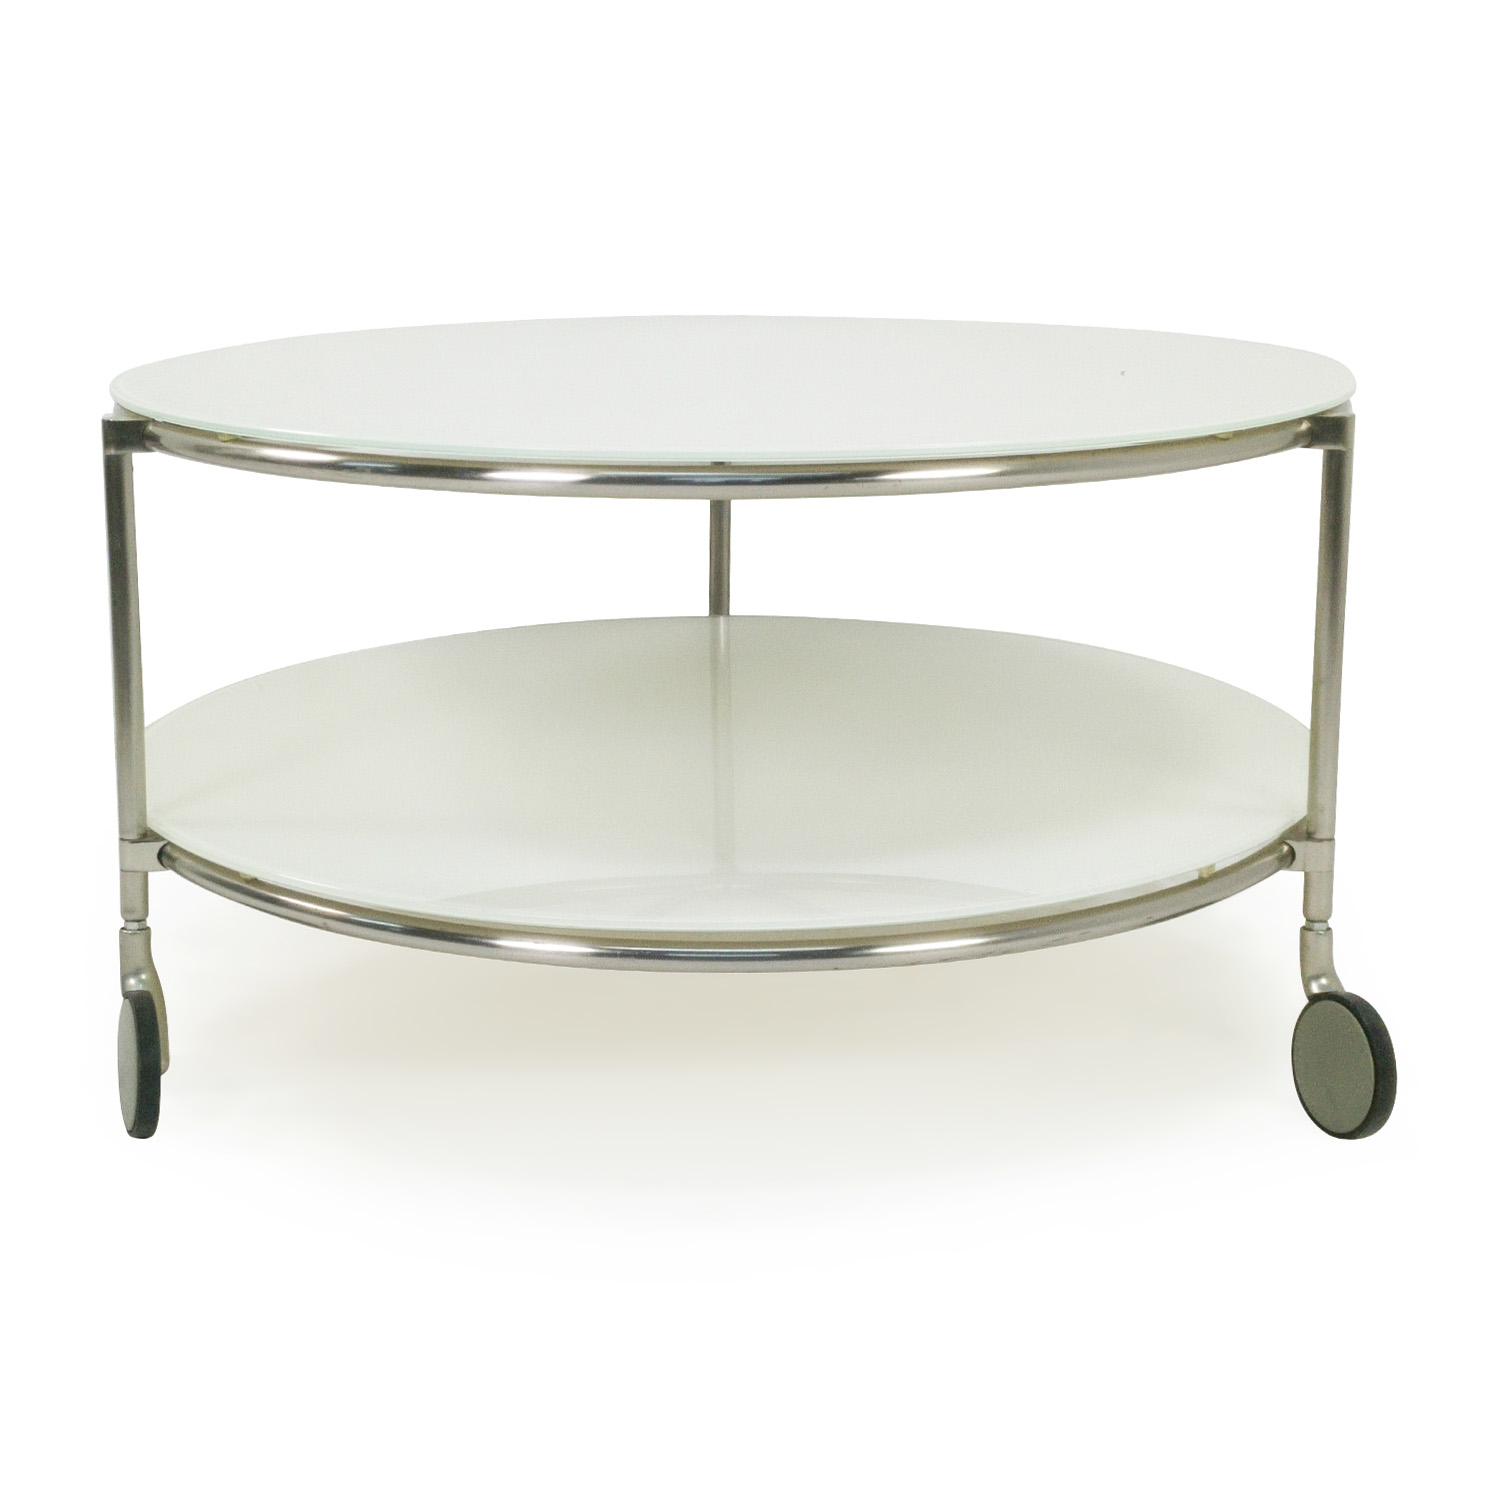 coffee table with casters 82% OFF   IKEA String Coffee Table with Casters / Tables coffee table with casters